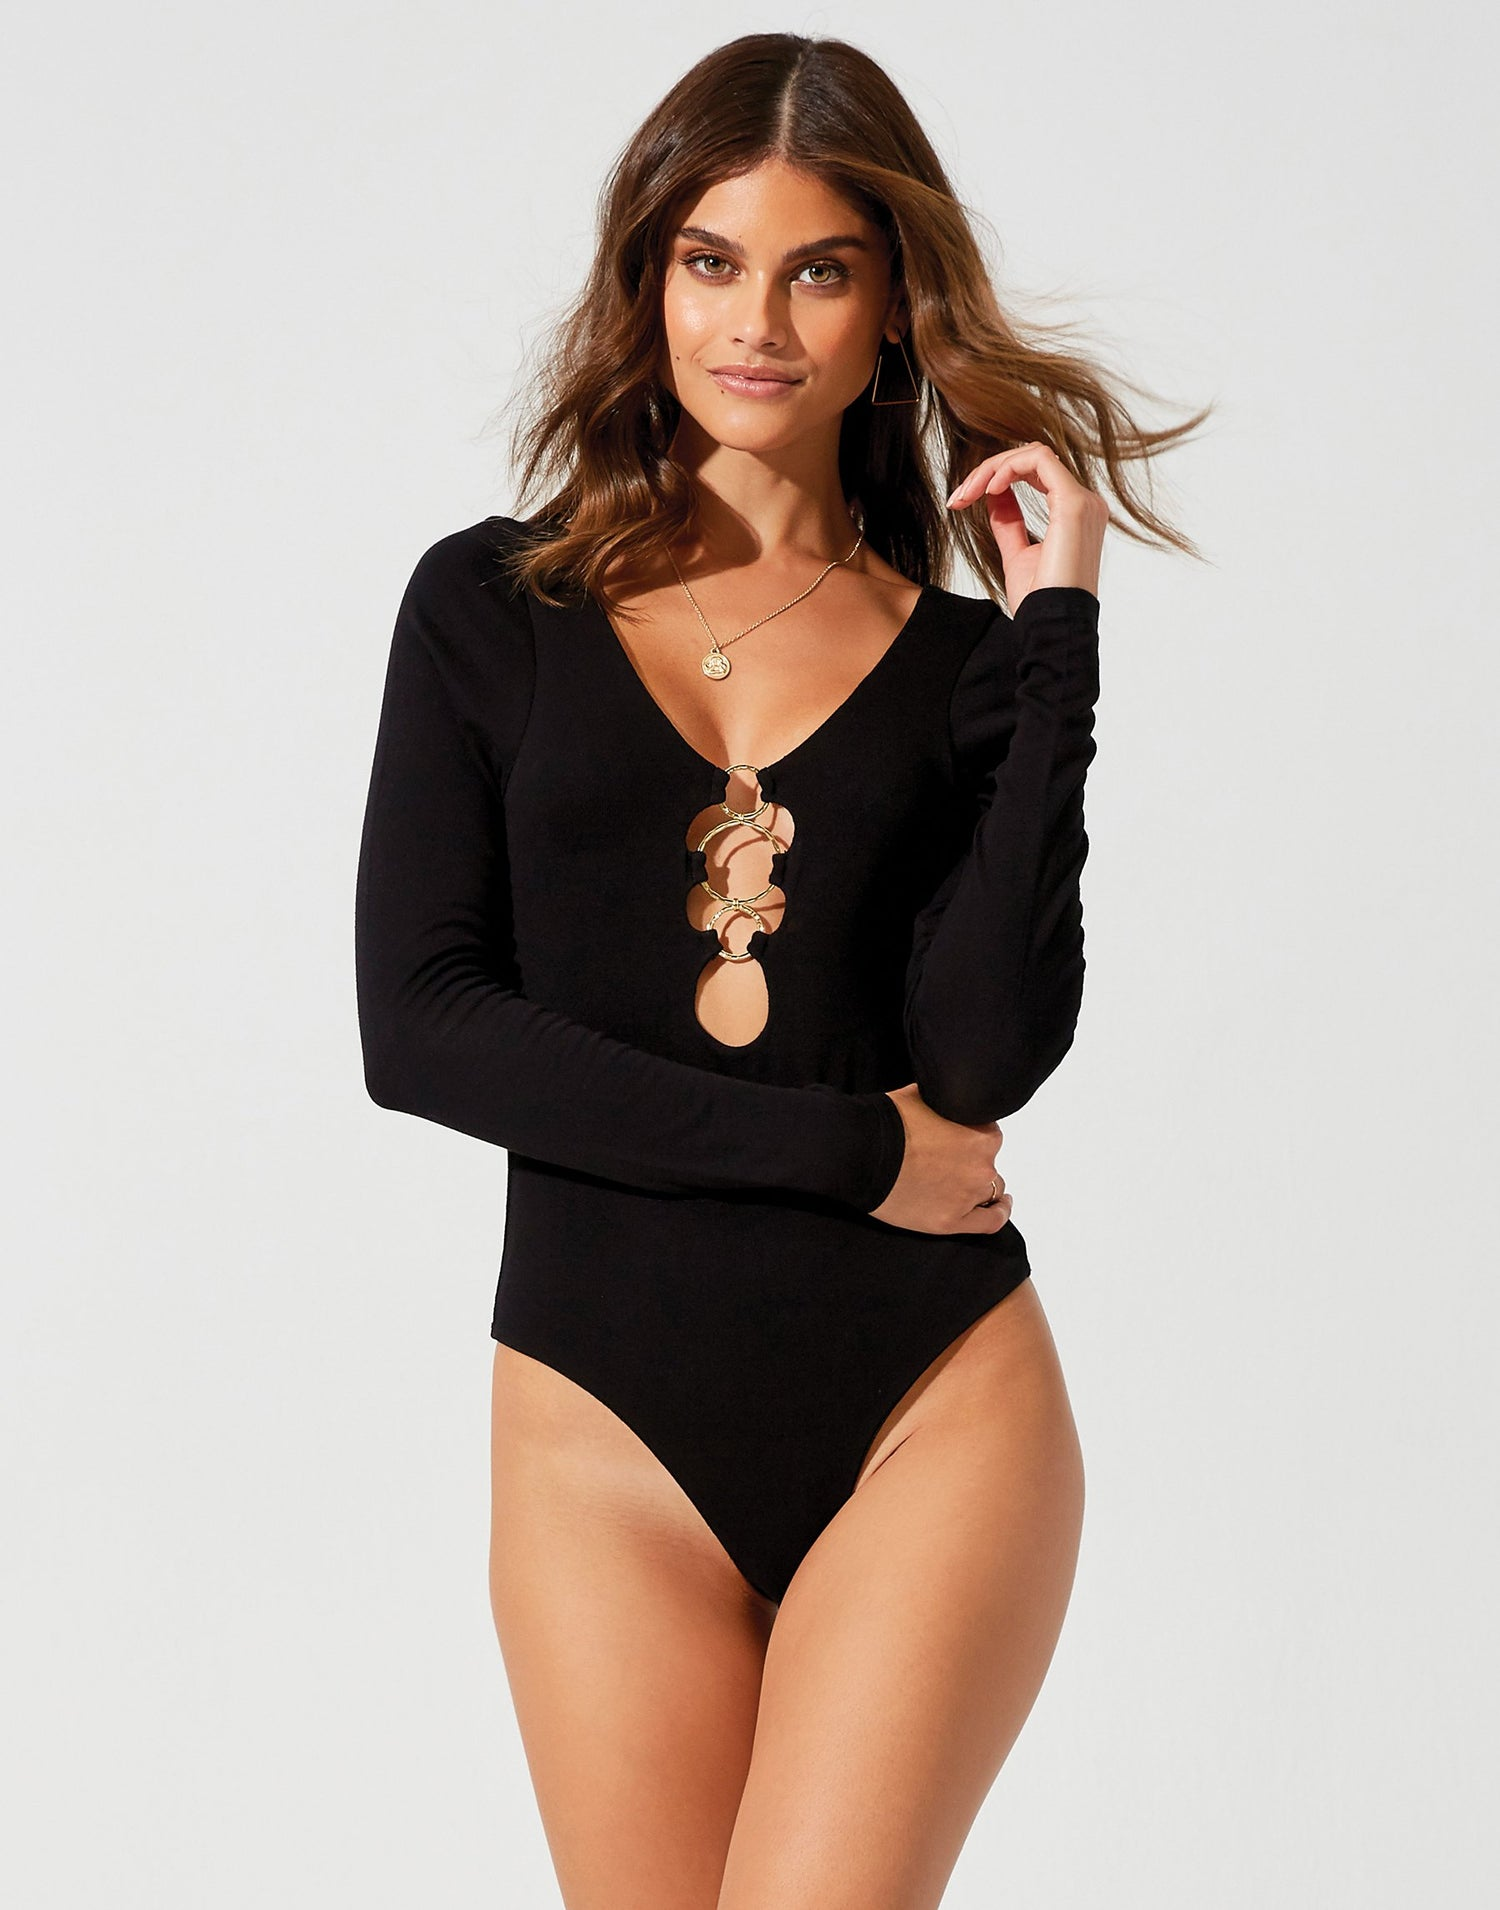 Lolo Bodysuit in Black with Gold Hardware - front view